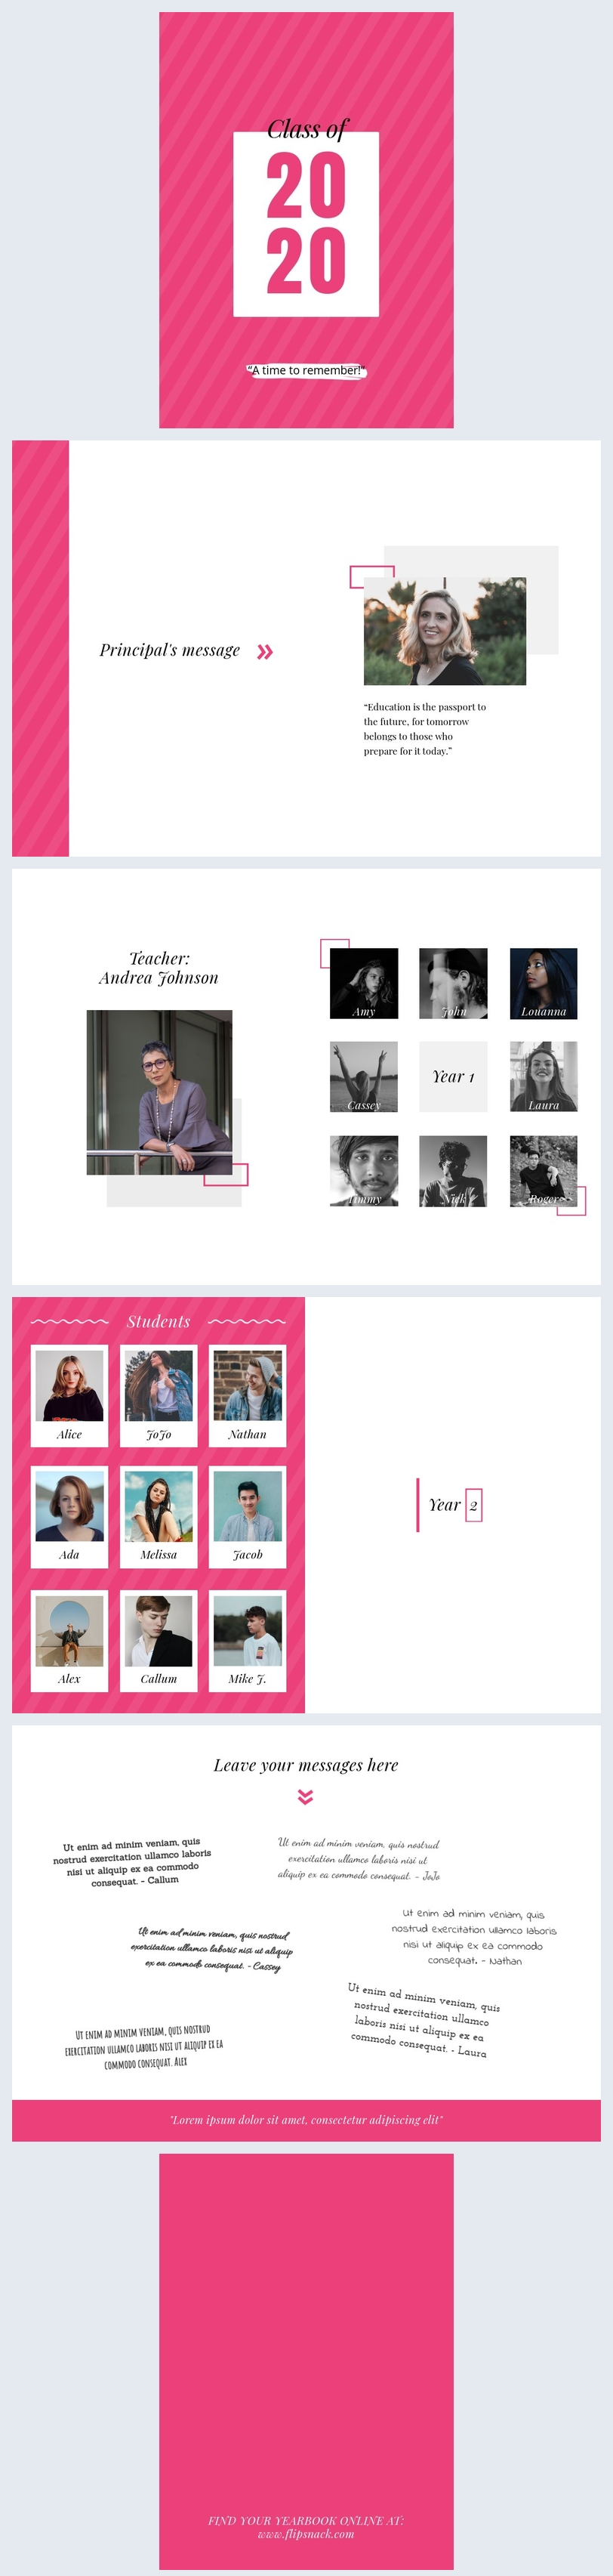 Design de mise en page d'album de promotion personnalisable